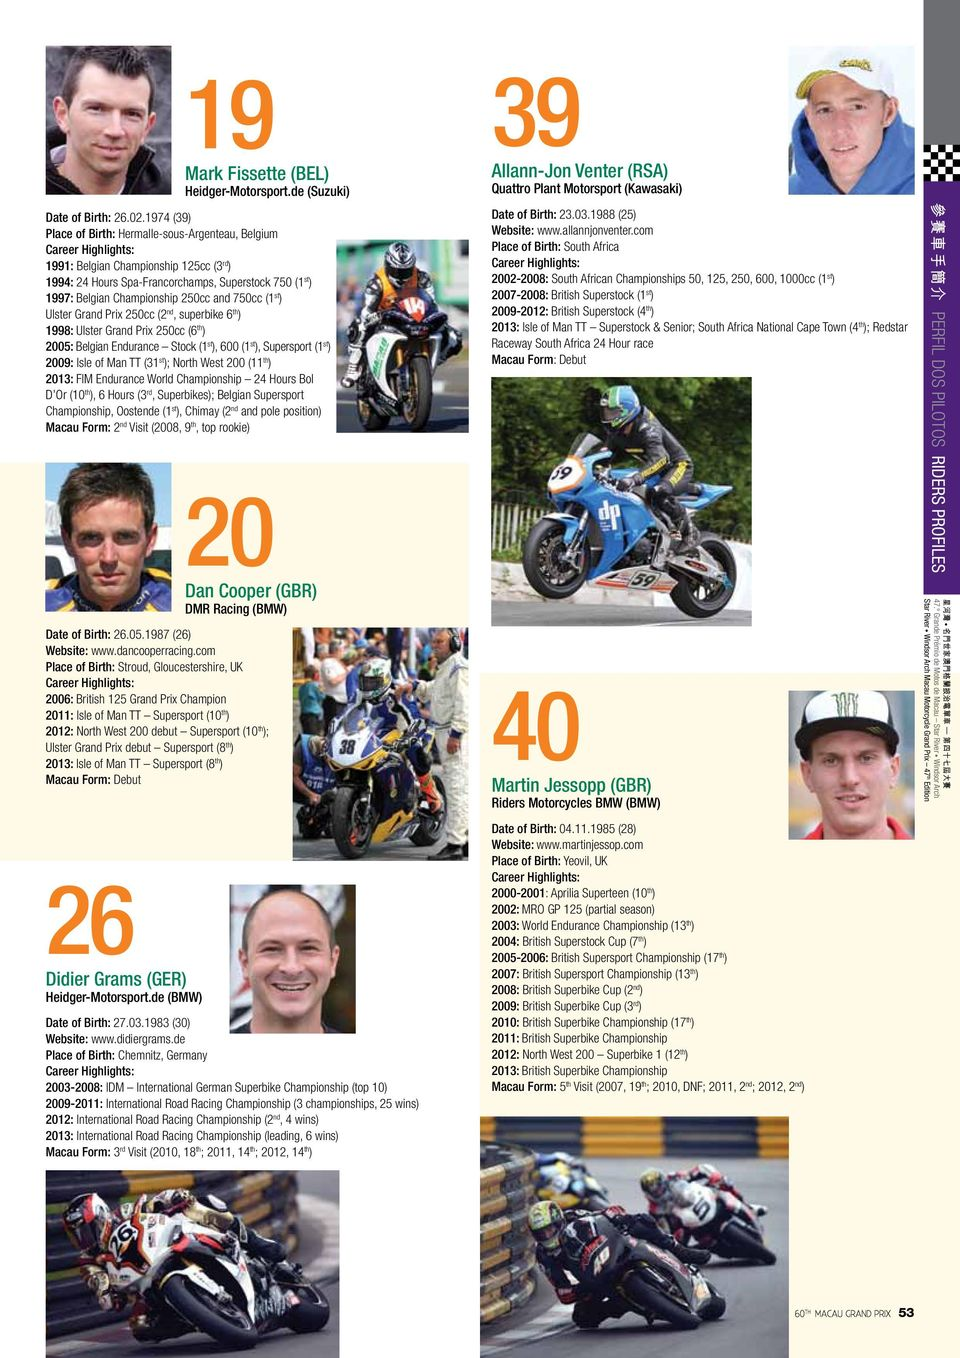 (1 st ) Ulster Grand Prix 250cc (2 nd, superbike 6 th ) 1998: Ulster Grand Prix 250cc (6 th ) 2005: Belgian Endurance Stock (1 st ), 600 (1 st ), Supersport (1 st ) 2009: Isle of Man TT (31 st );